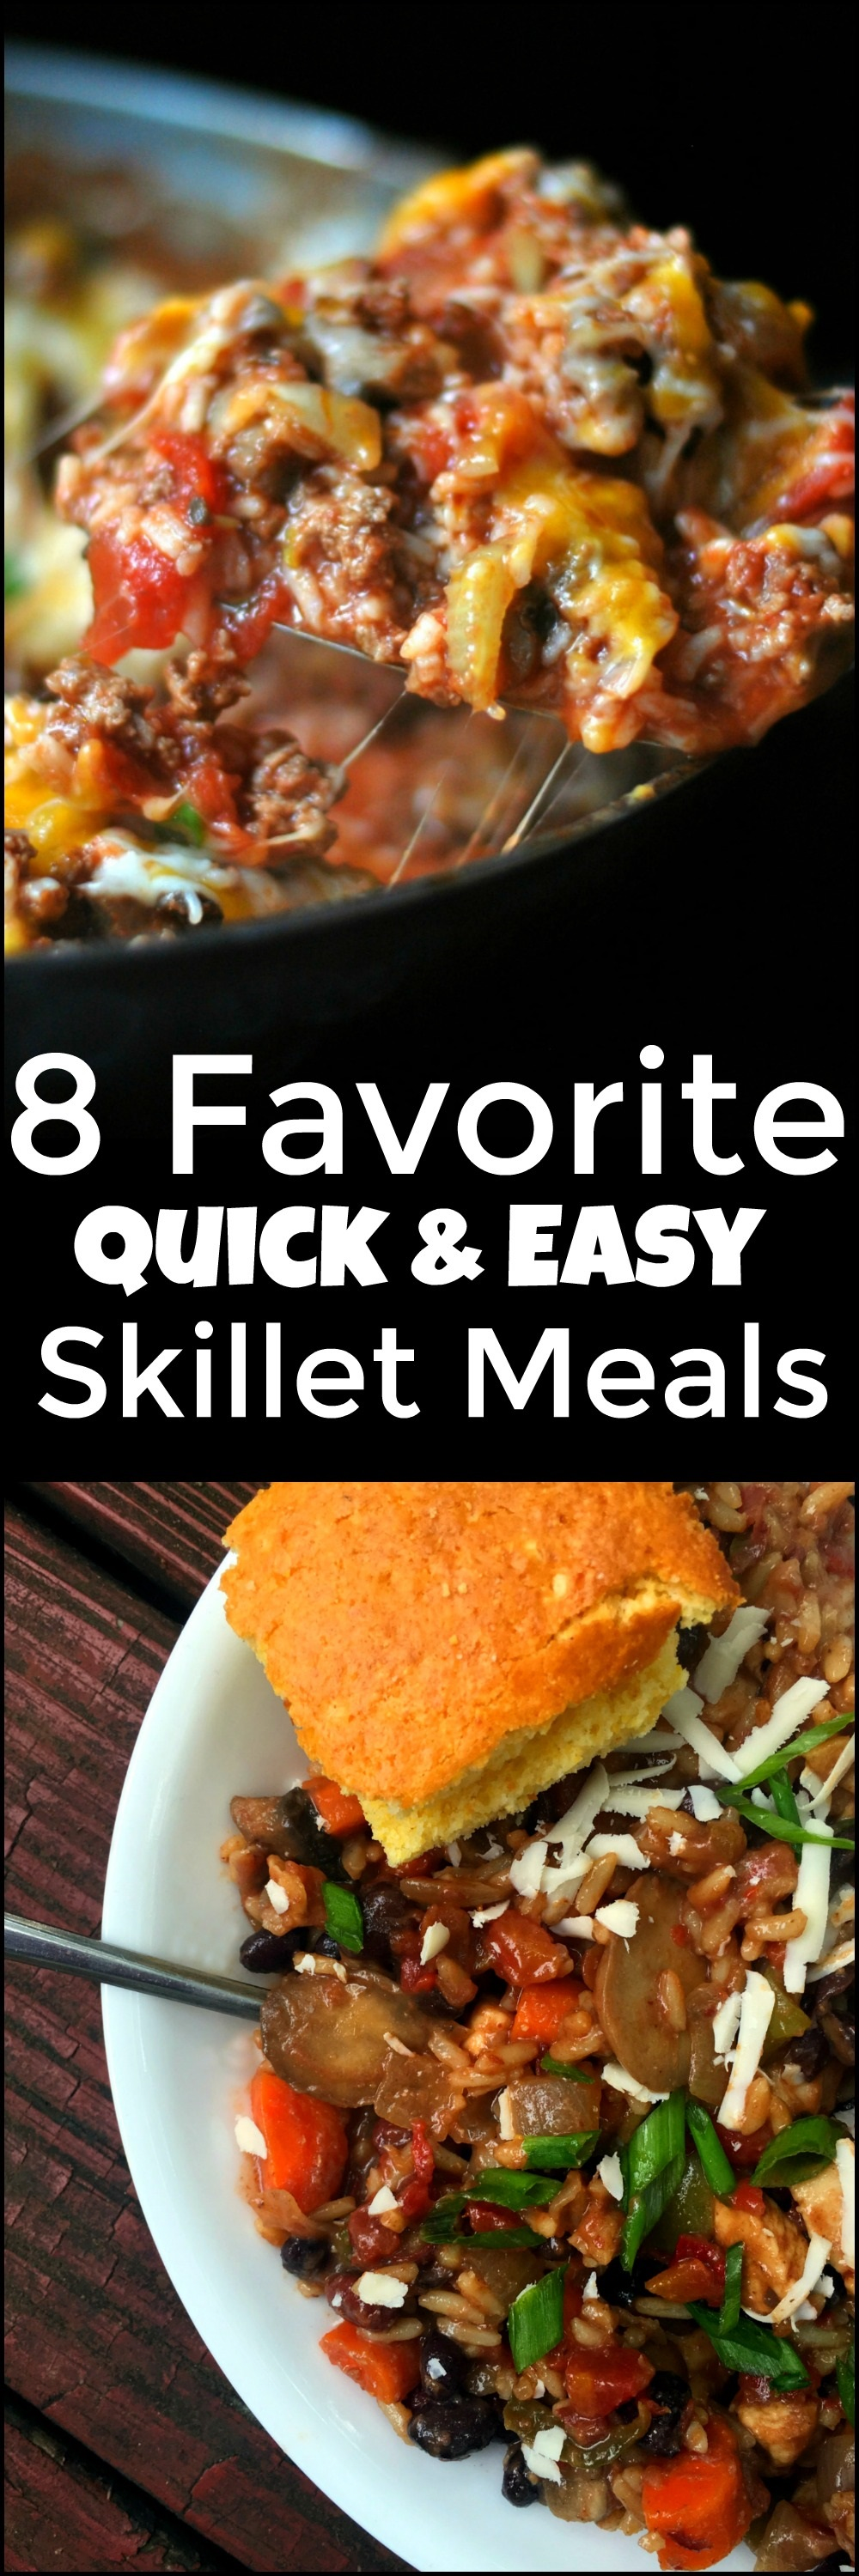 Quick Easy Makeup Tips Ideas For Work: Favorite Quick & Easy Skillet Meals